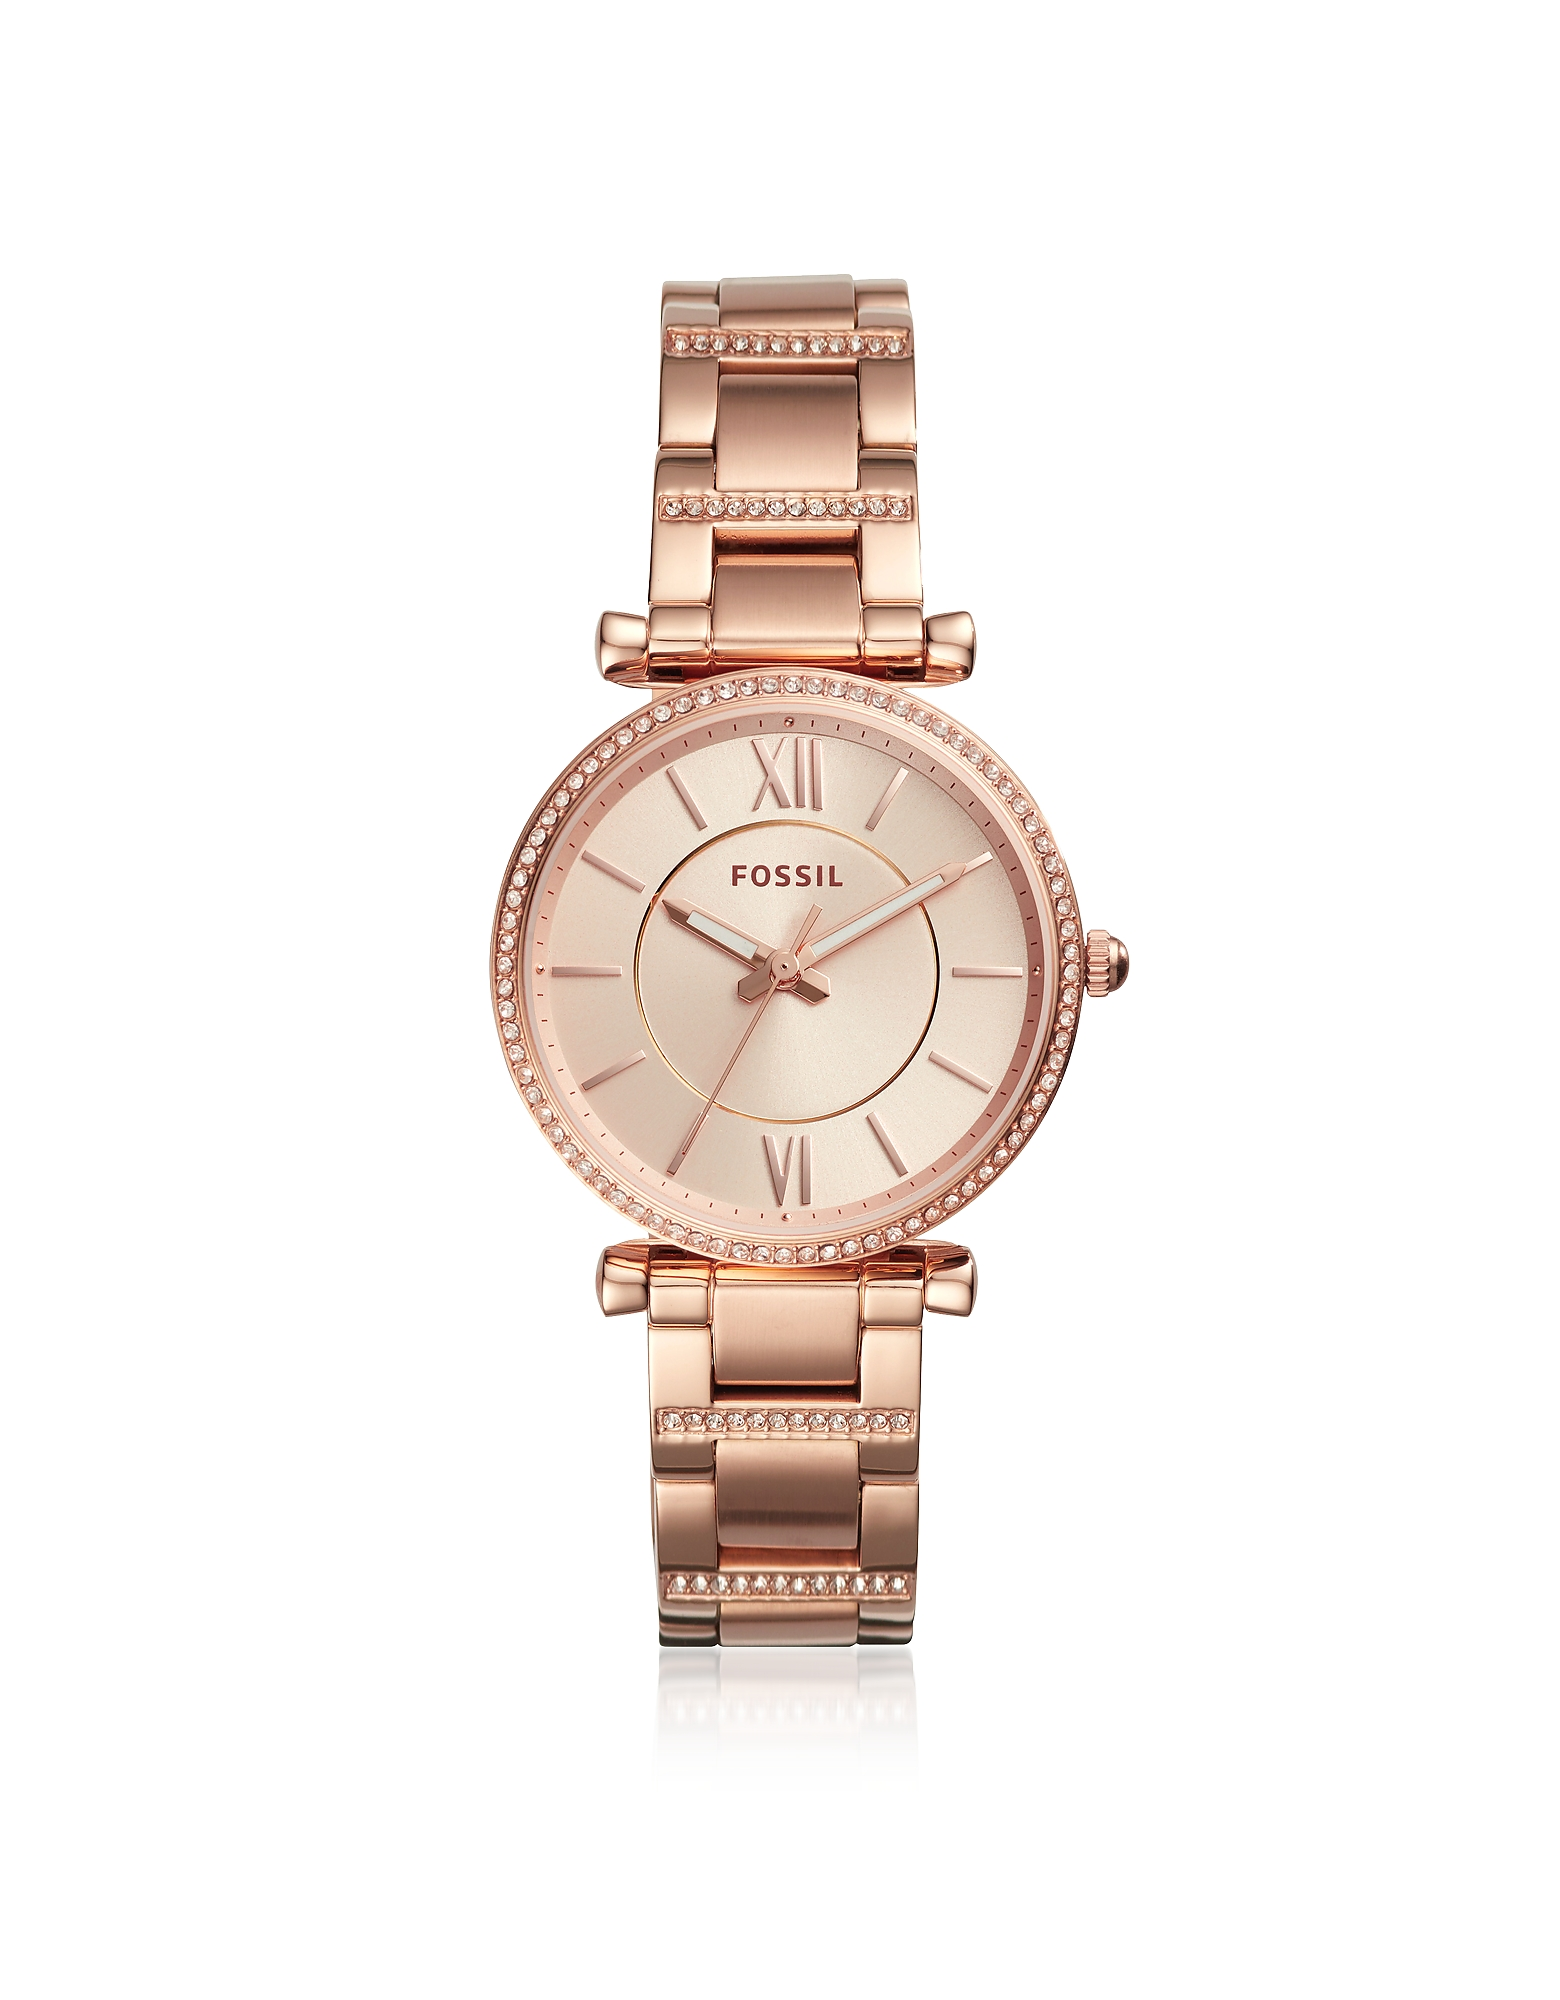 Fossil Women's Watches, Carlie Three-Hand Rose Gold-Tone Stainless Steel Watch